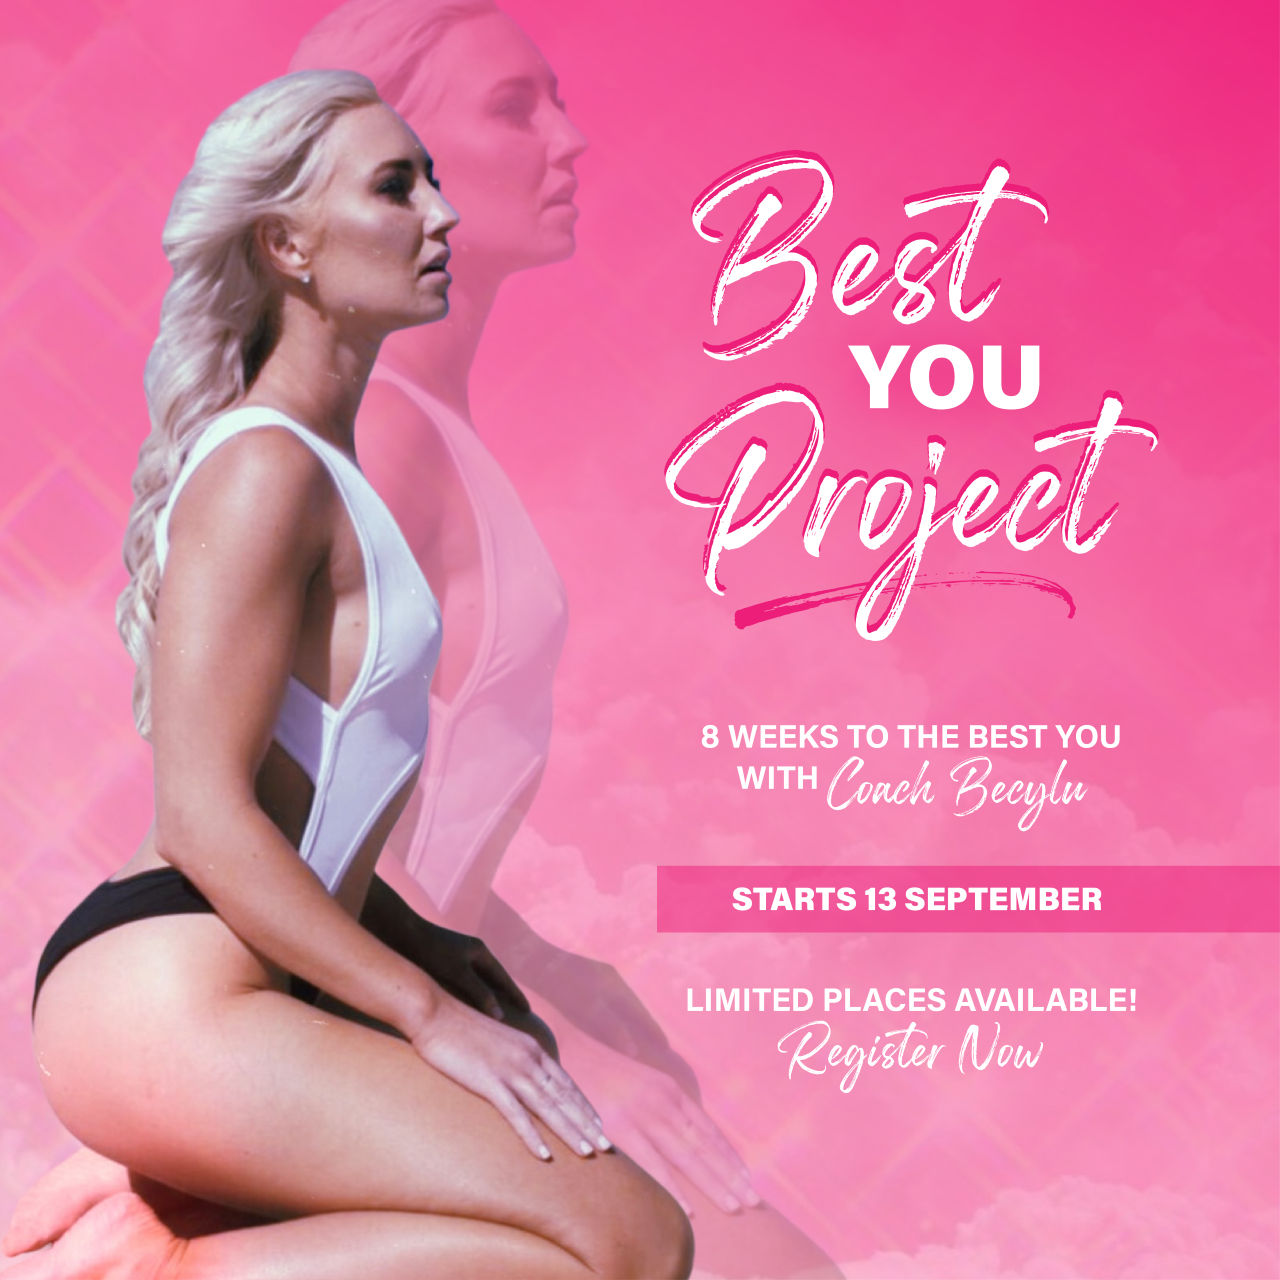 Personal trainer   Get fit with a professional personal trainer & a bikini model